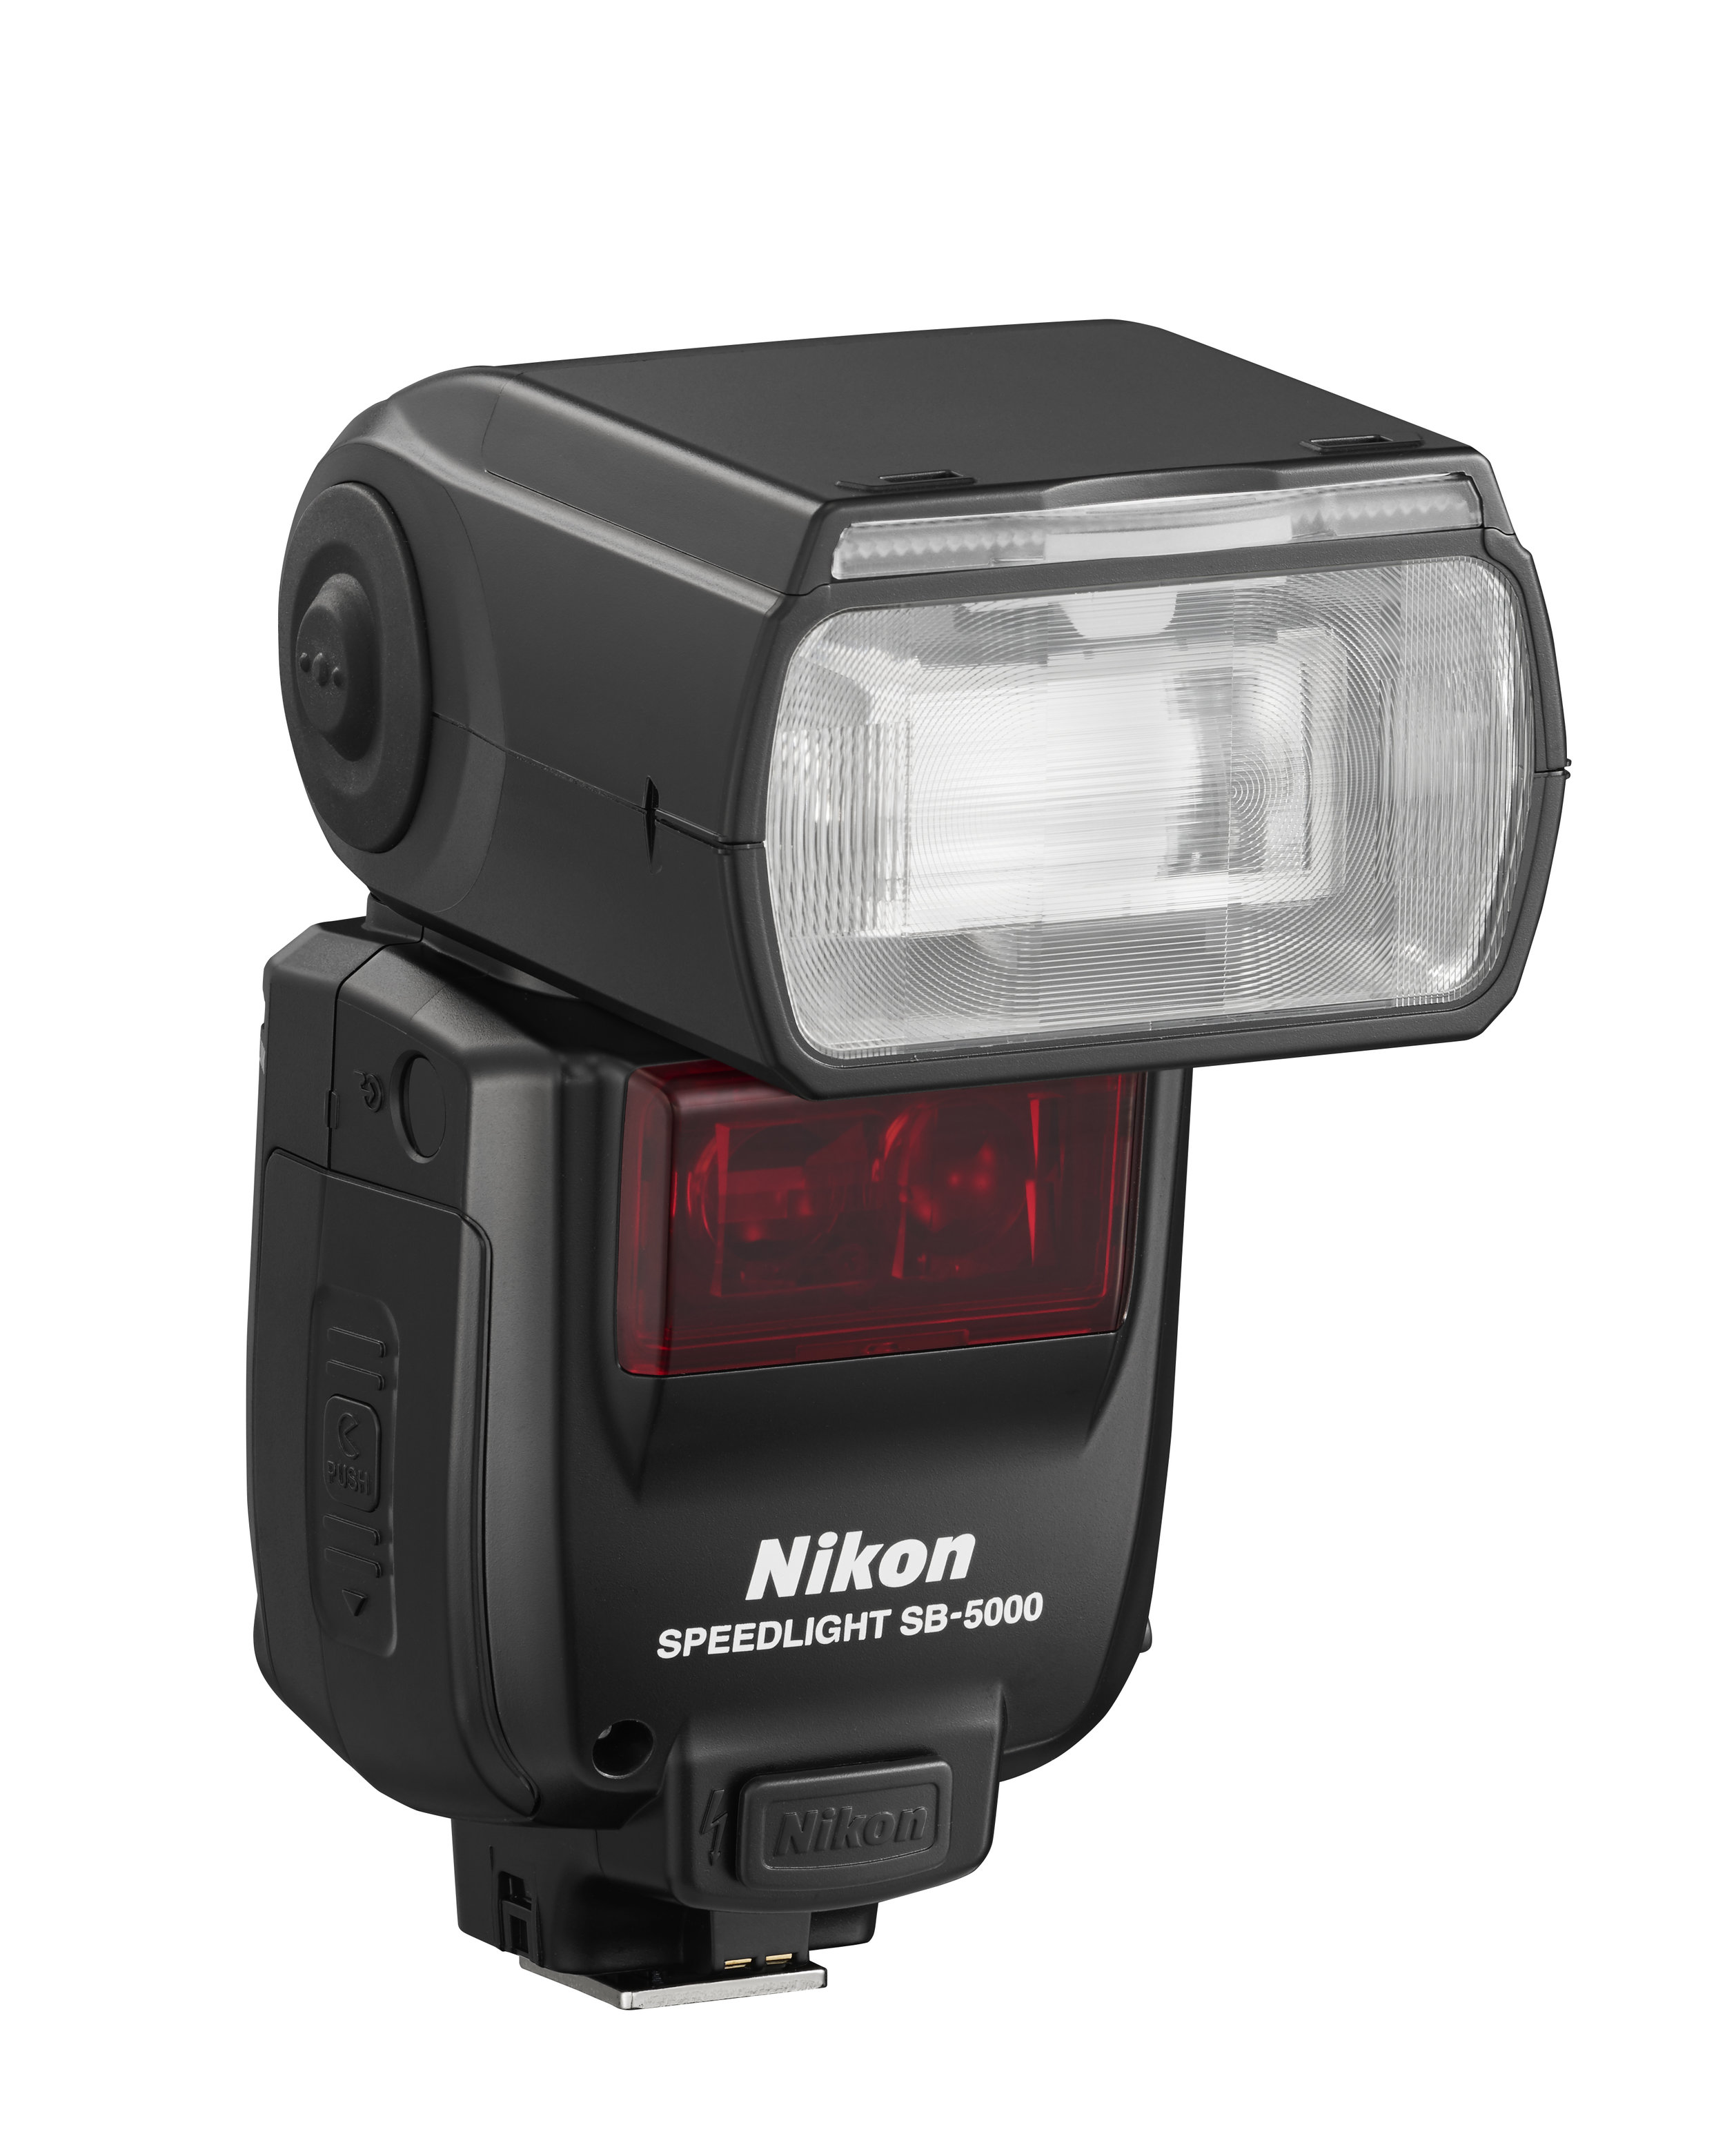 If you have the money for Nikon brand Speedlight, you cannot beat the SB-5000